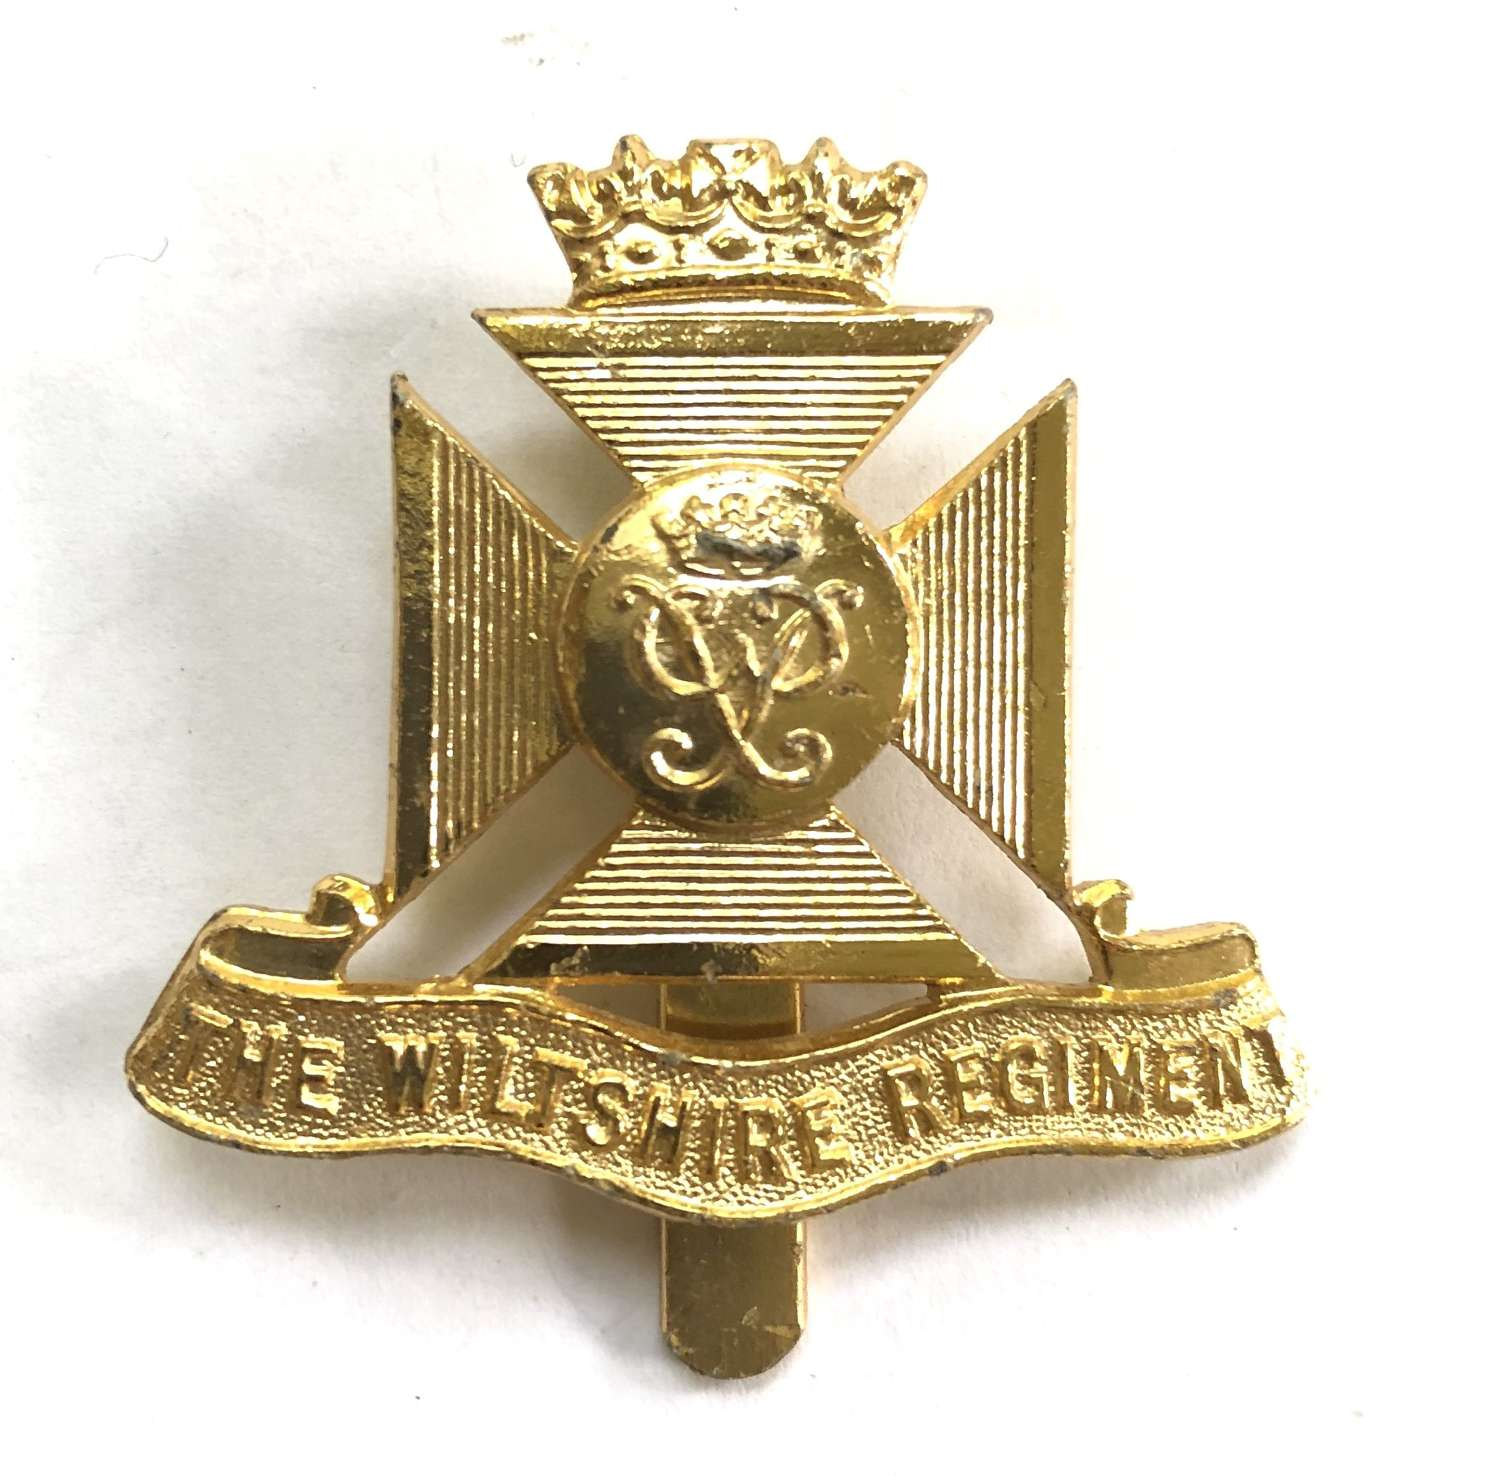 Wiltshire Regiment anodised cap badge circa 1954-59